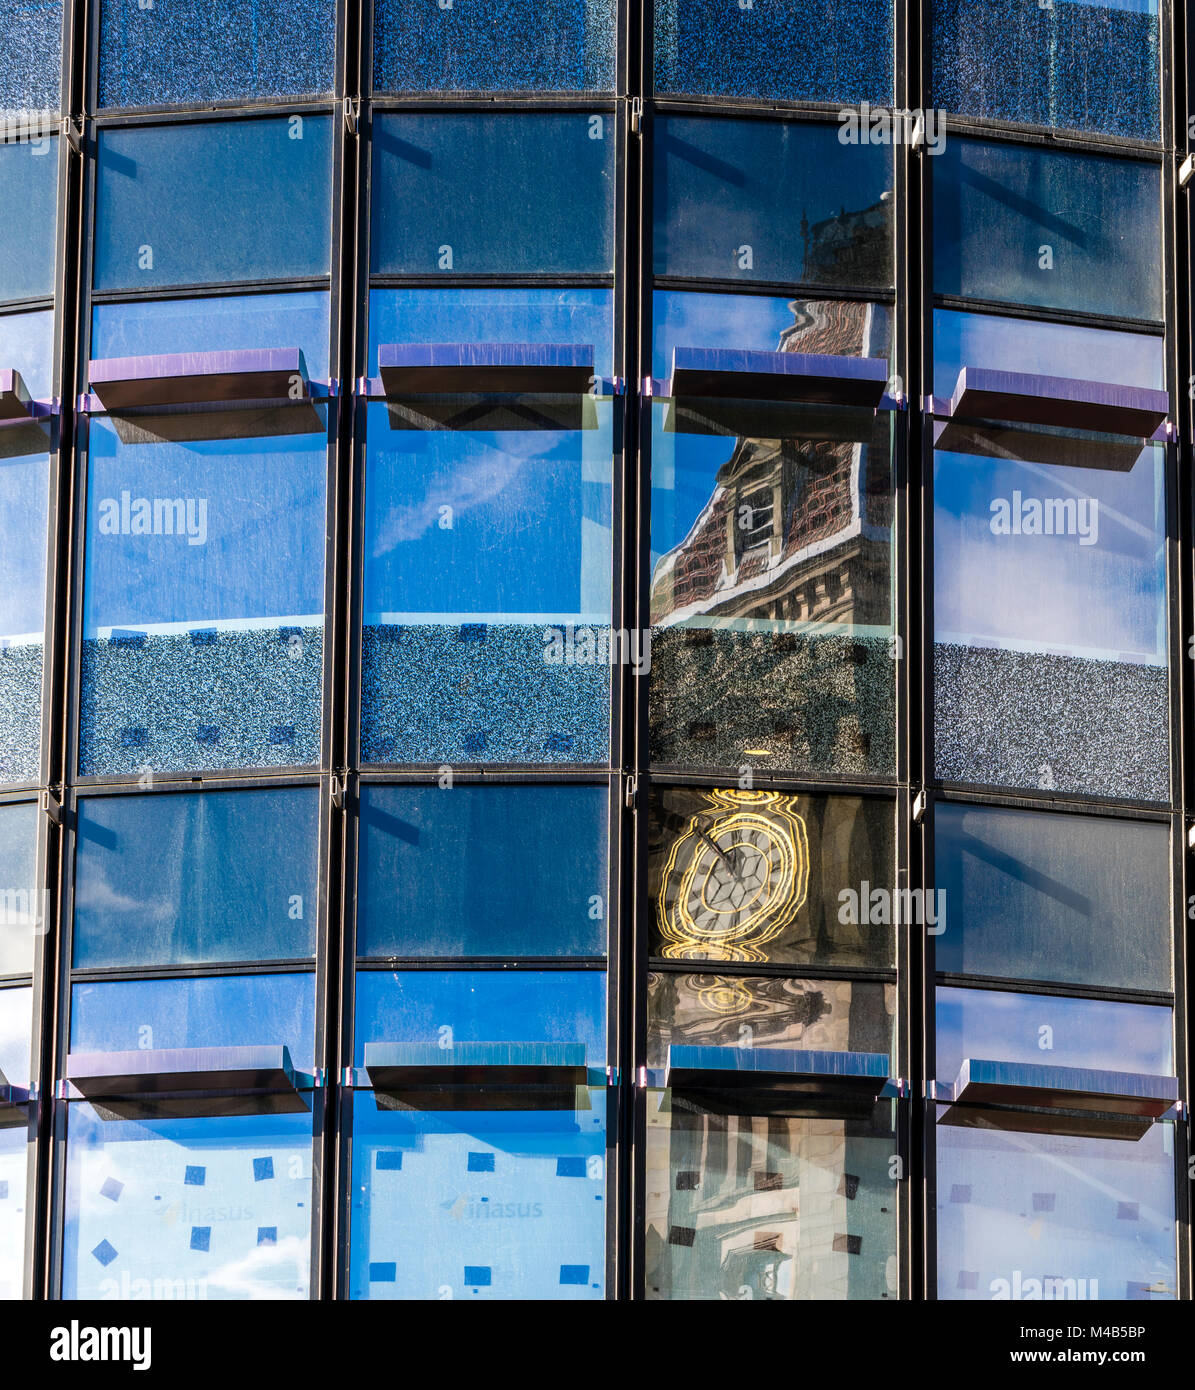 Reflection of a clock tower in a new building in Birmingham, UK - Stock Image